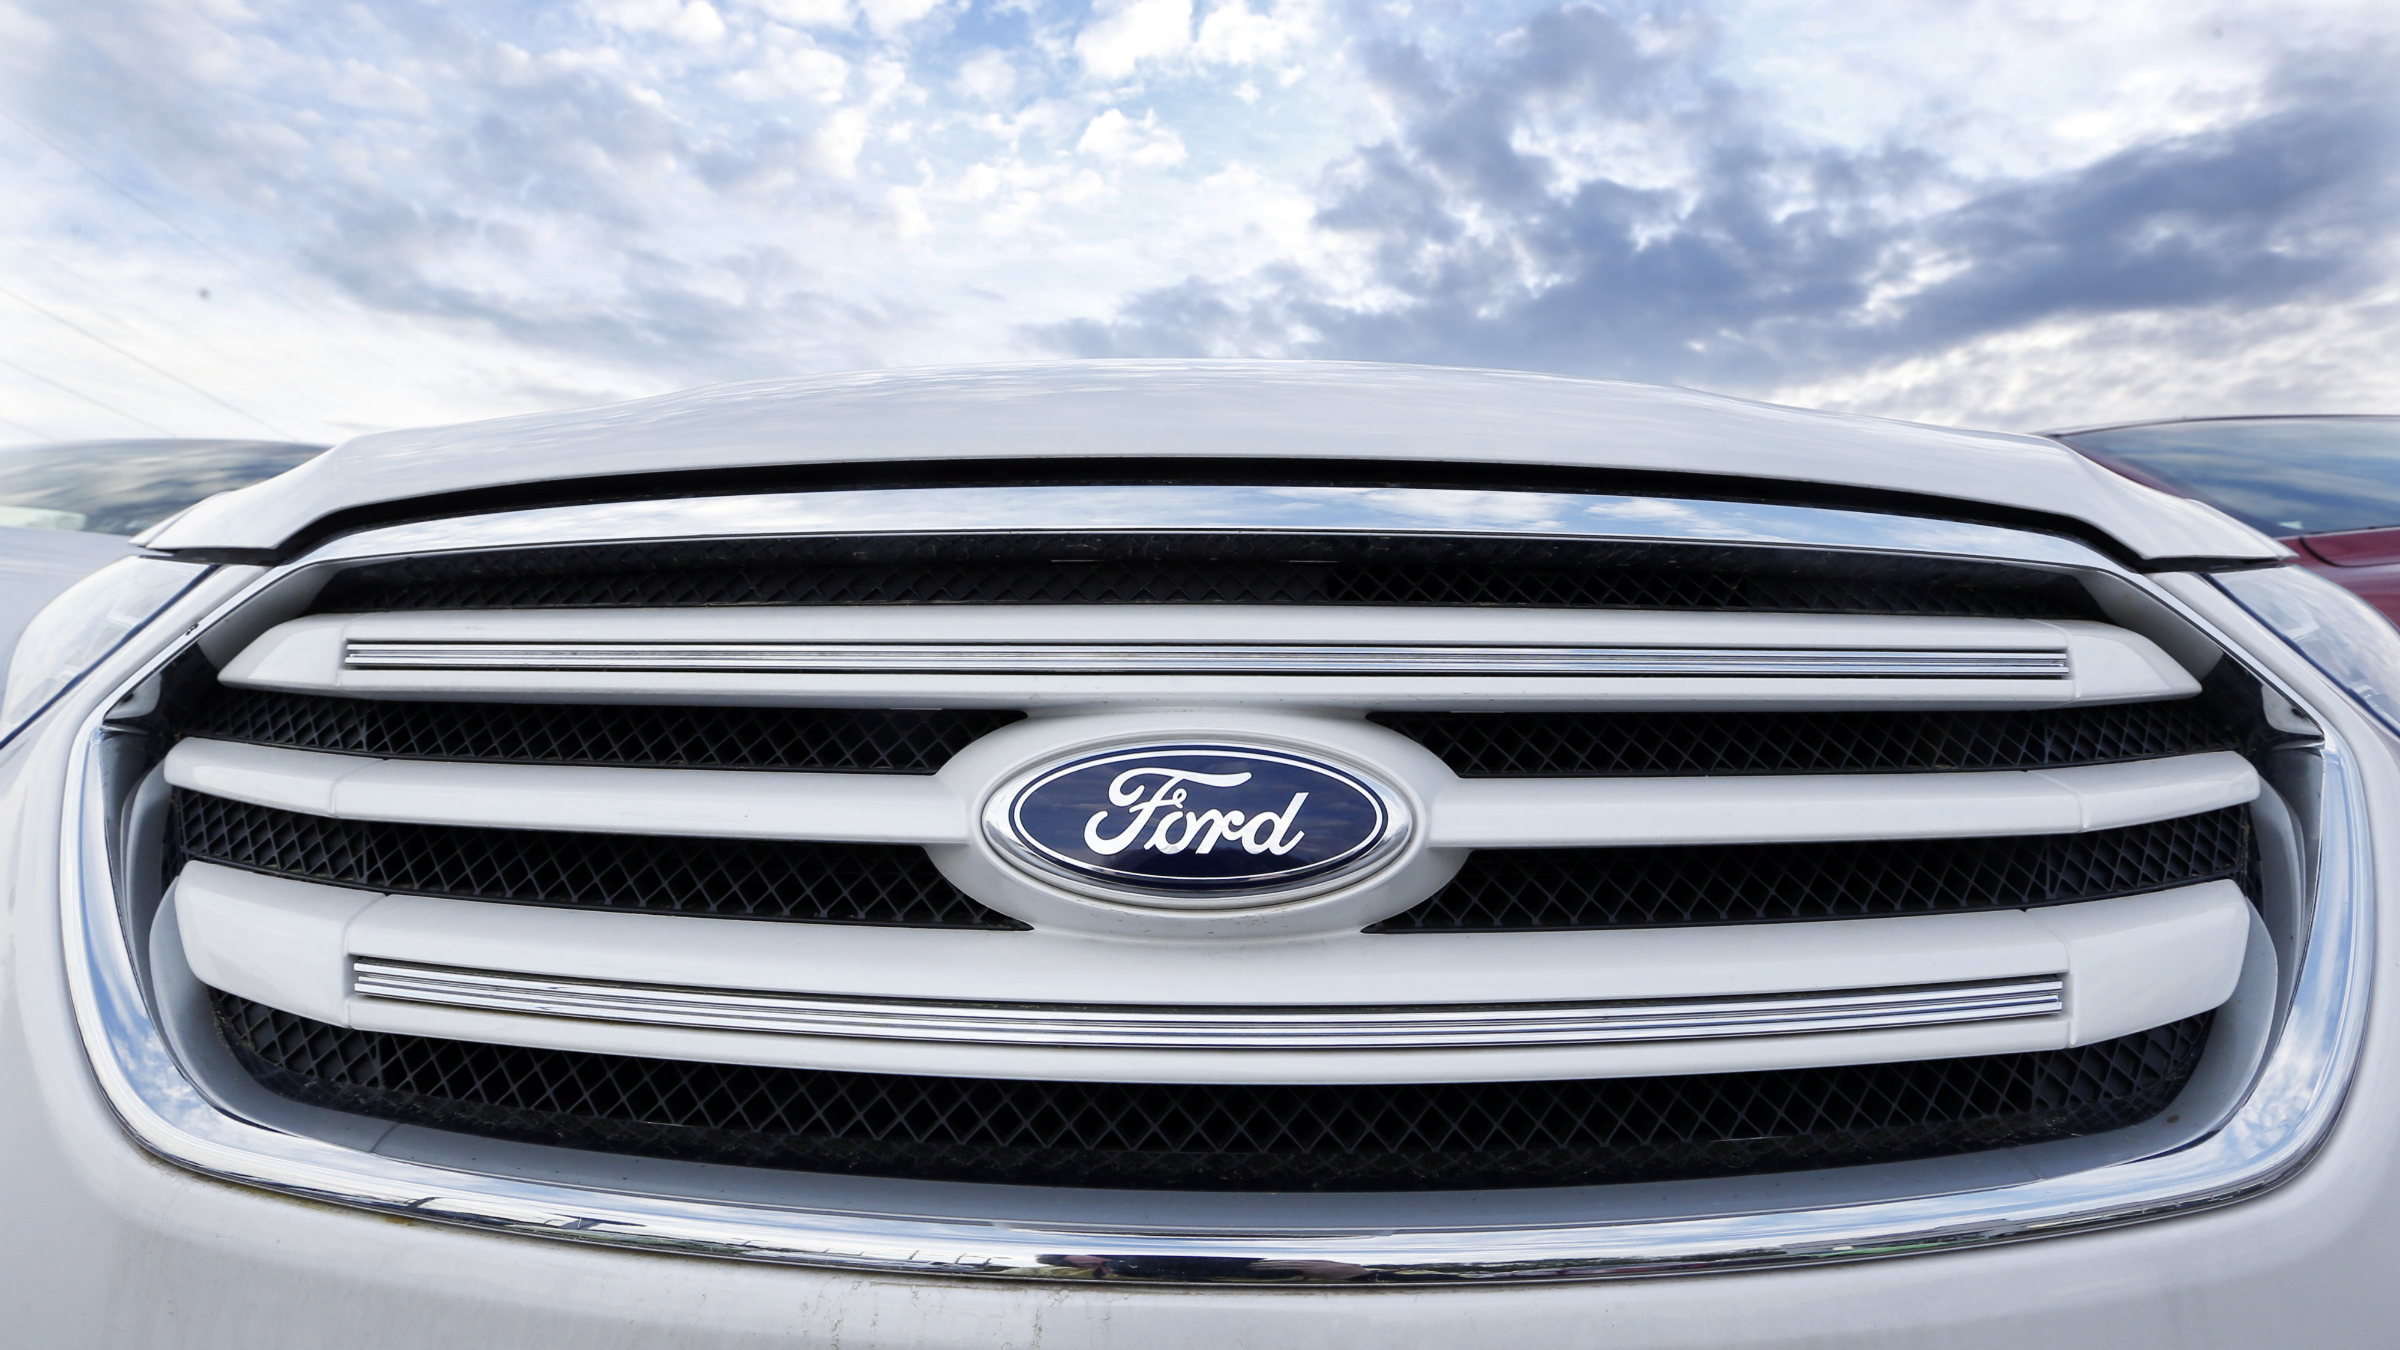 Car-Leasing-Auto-Sales-Ford